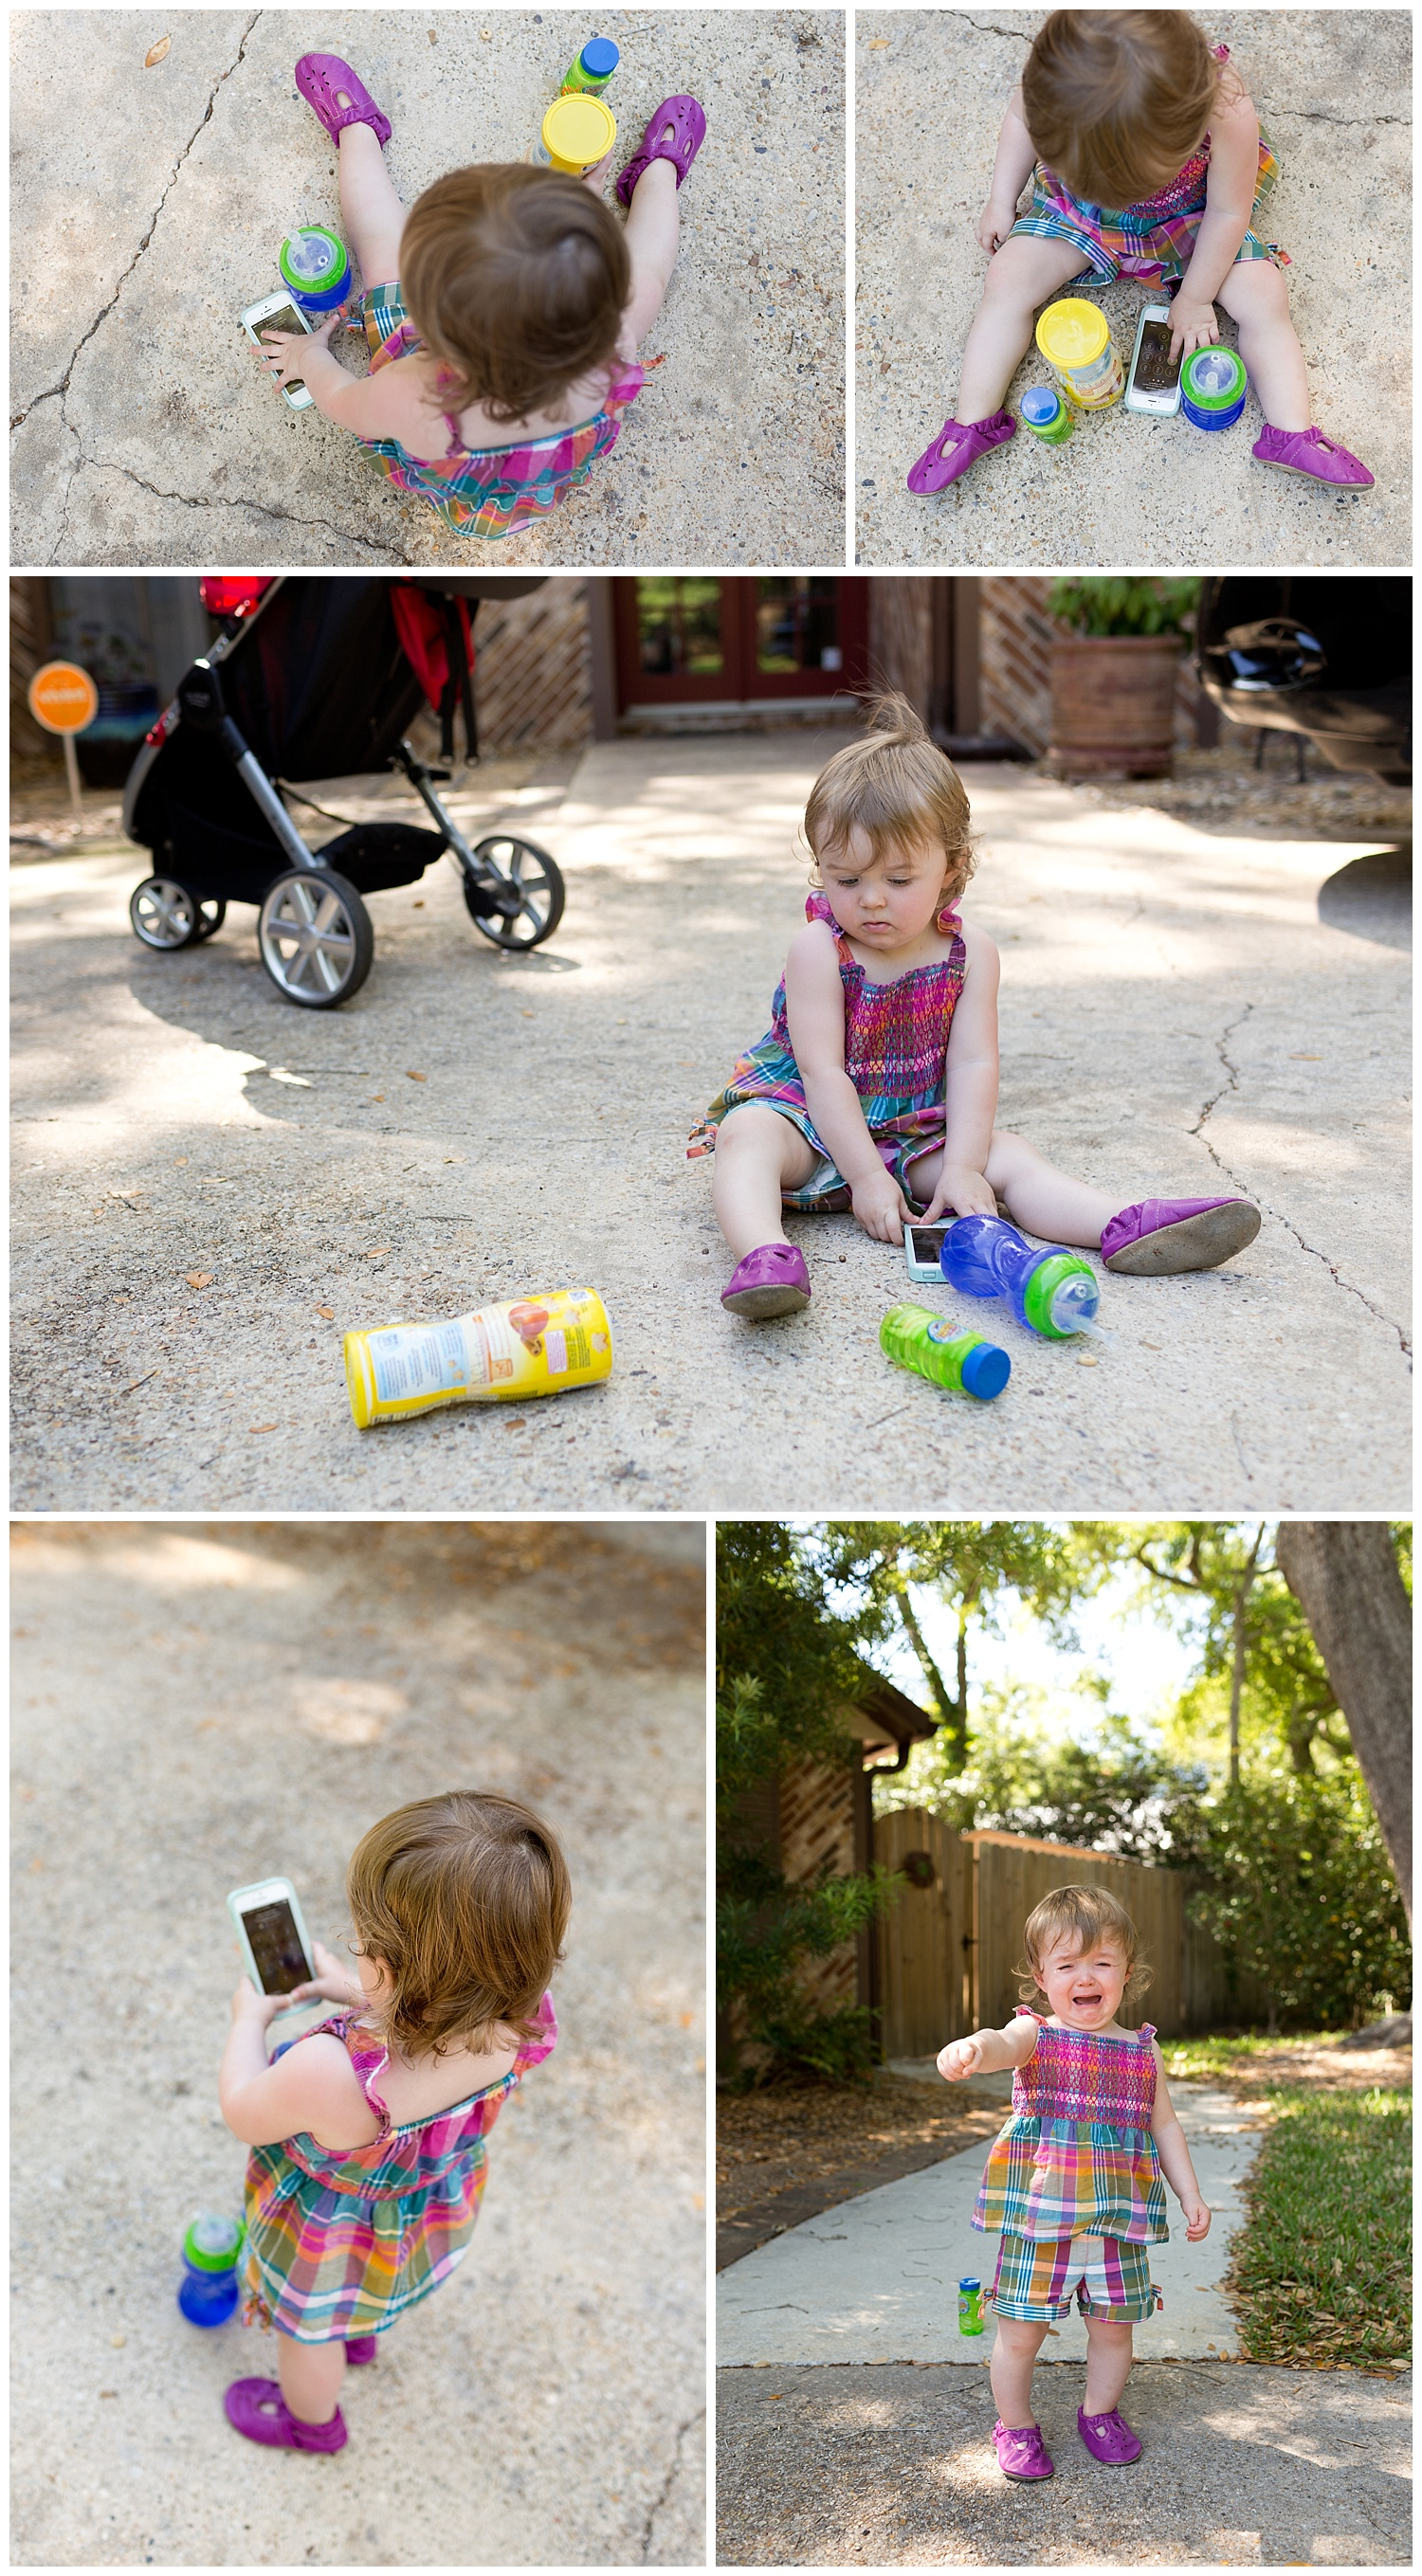 toddler playing with cell phone outside